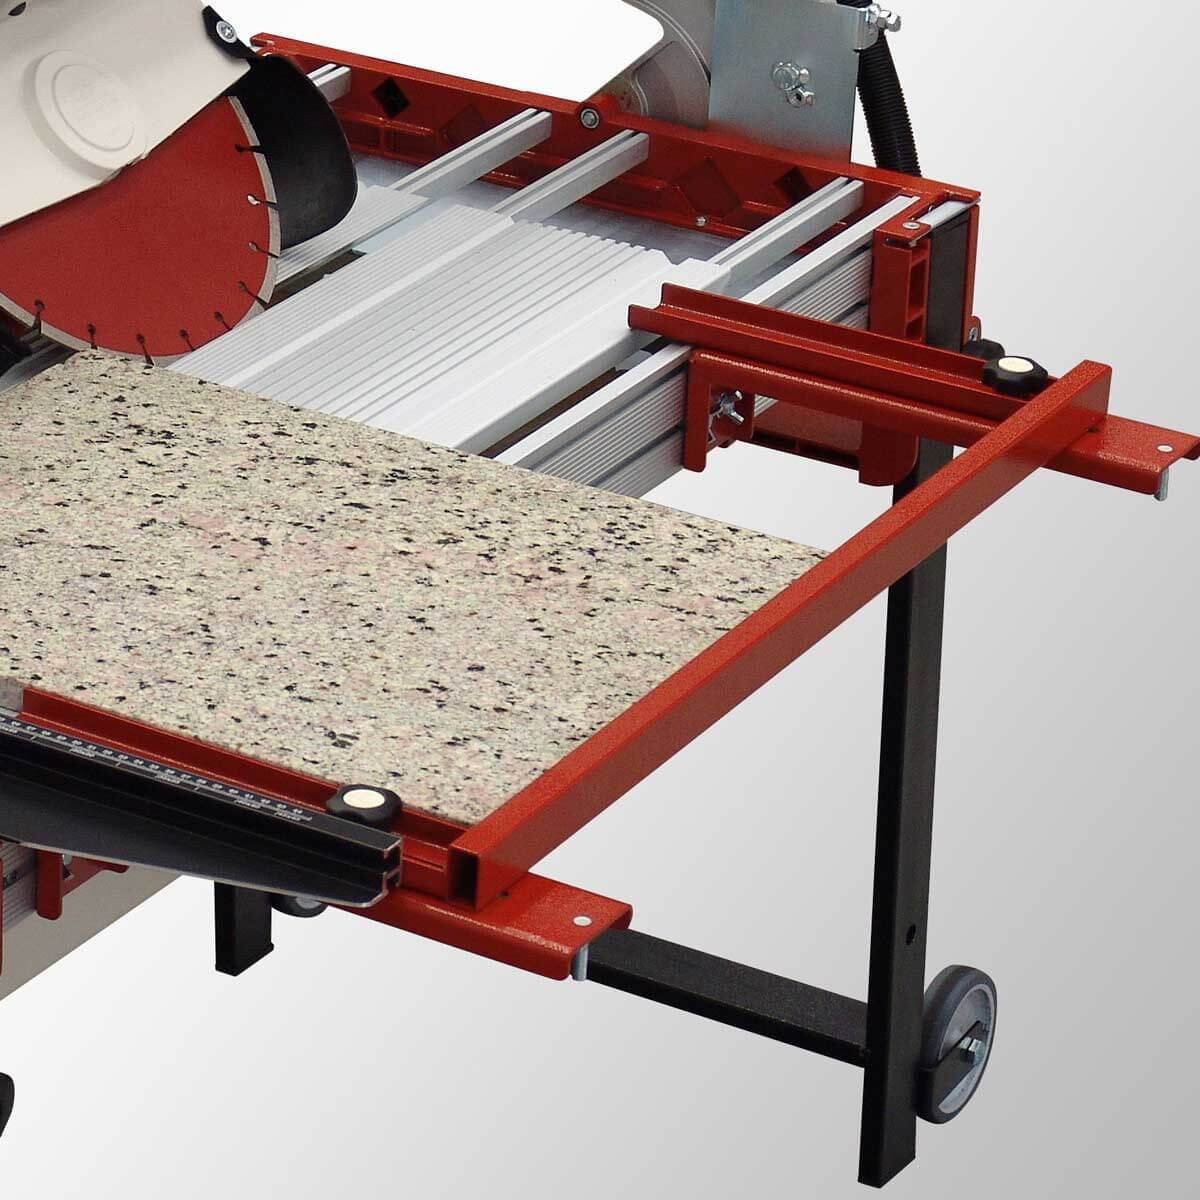 Raimondi Rail saw cutting granite with extension side square